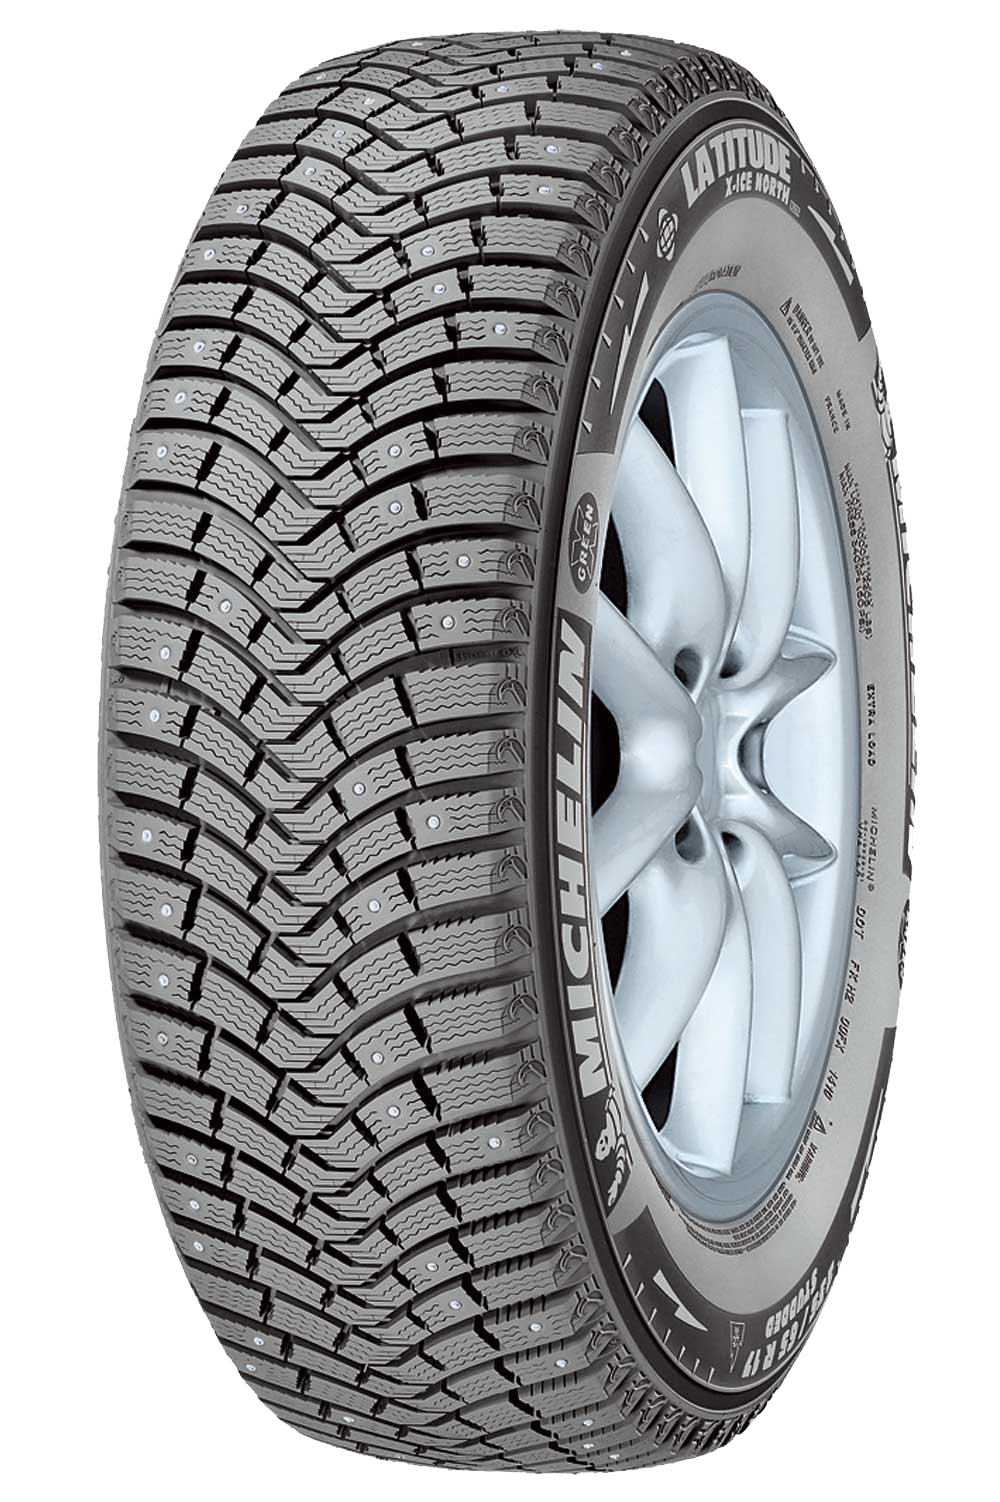 Зимняя шипованная шина Michelin Latitude X-Ice North XIN2 plus 285/50 R20 116T